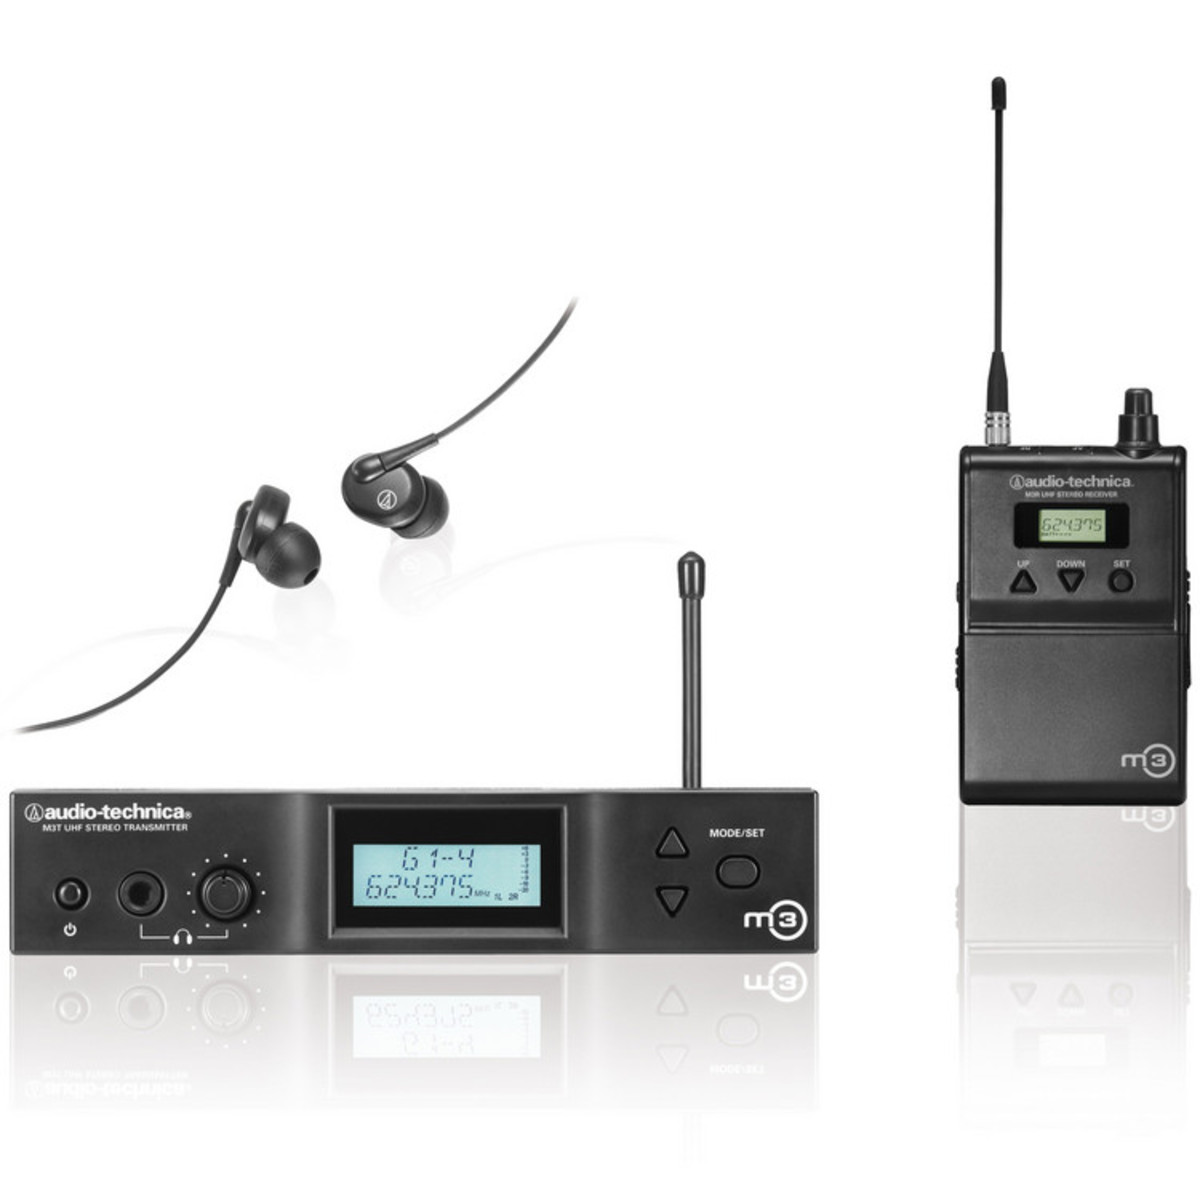 Peavey Wireless In Ear Monitors Wire Center Atx Power Supply Schematic Tyxyke5739s Soup Audio Technica M3 Monitor System At Gear4music Com Rh Cordless